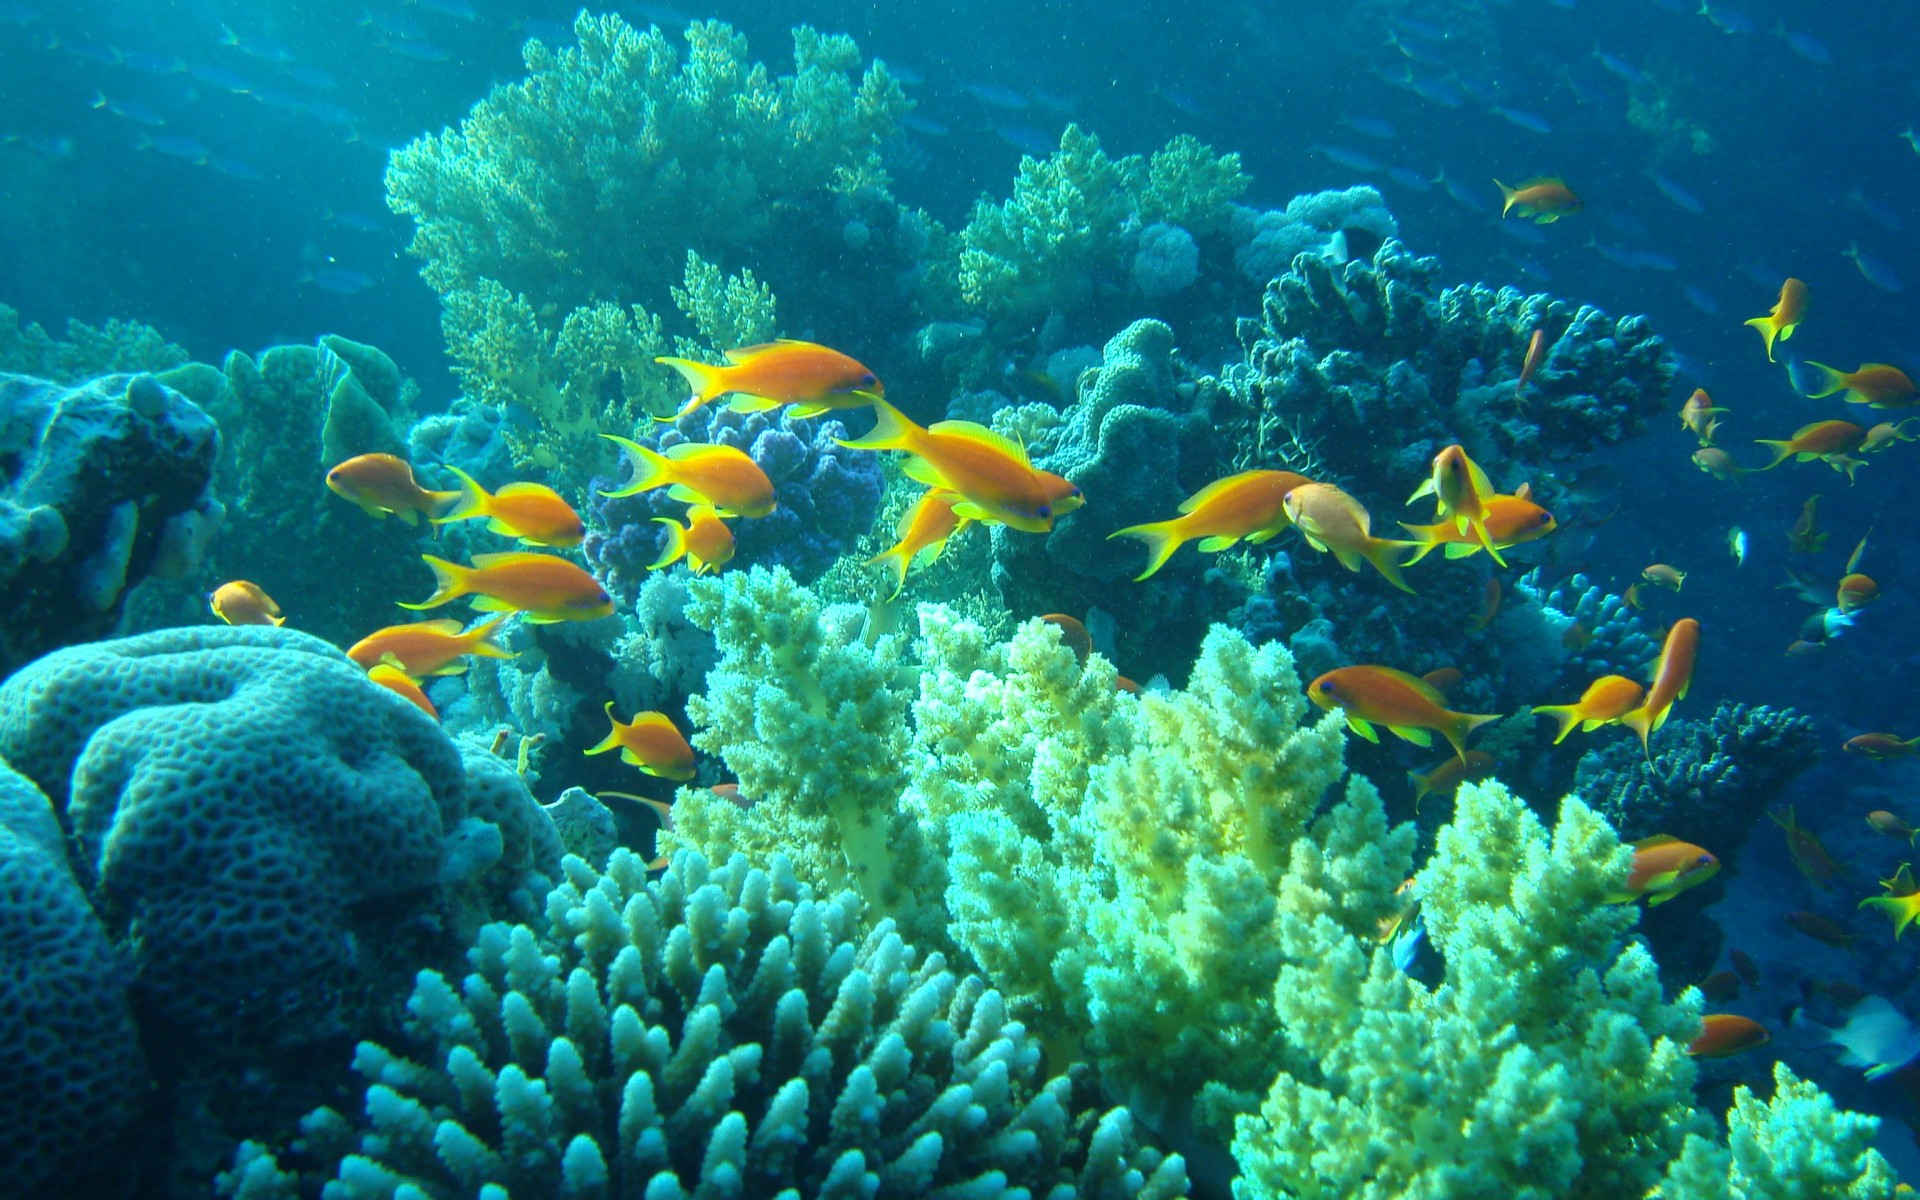 Underwater Egypt sea ocean fishes coral tropical wallpaper 1920x1200 1920x1200